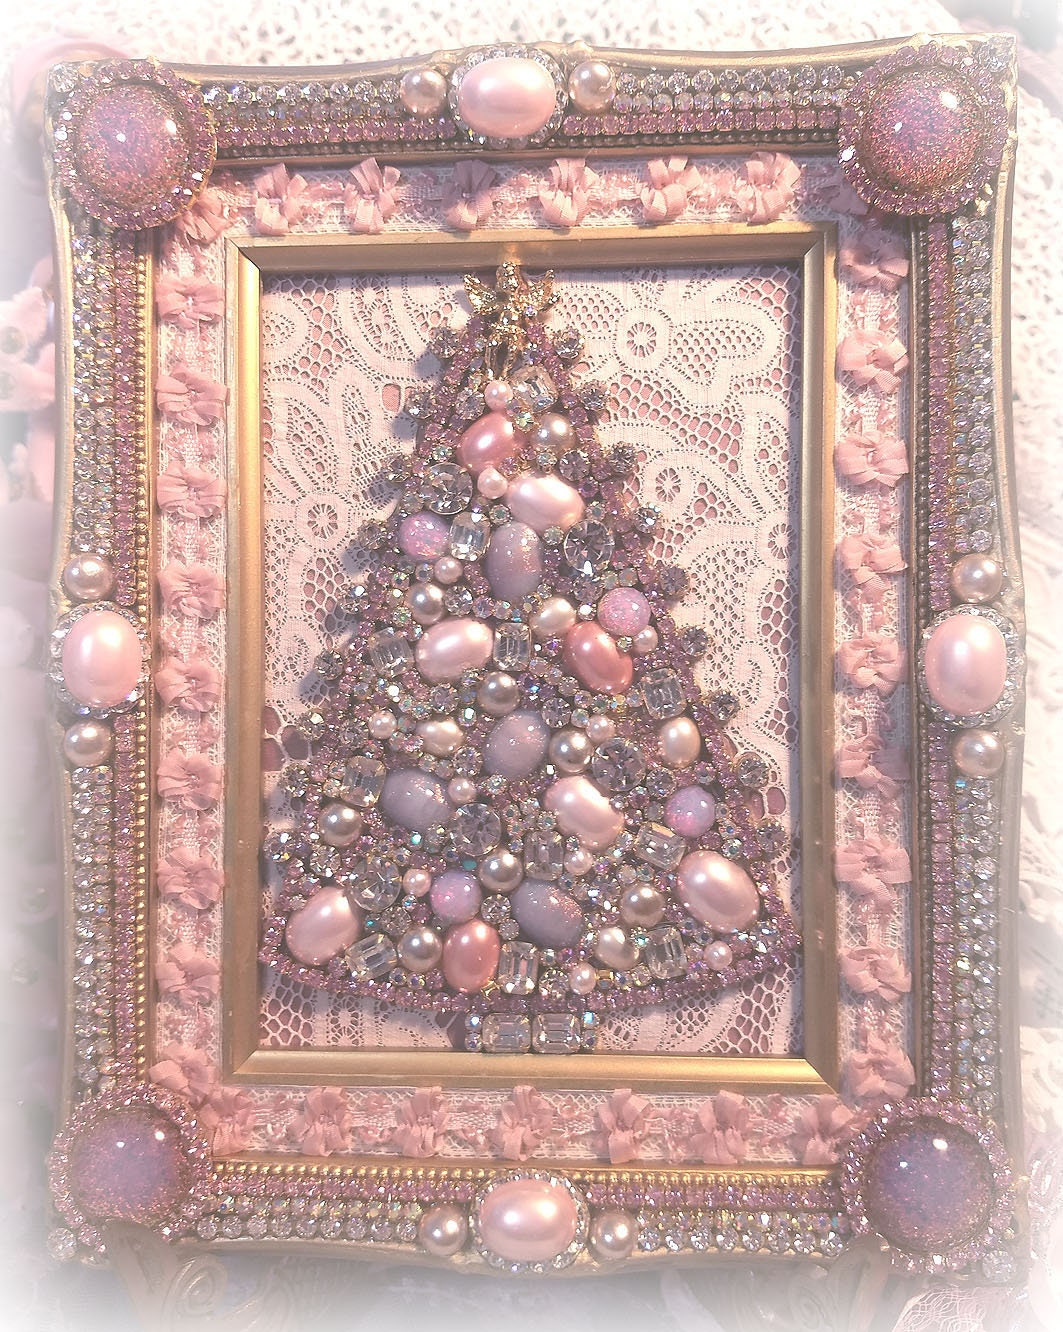 Exquisite Jeweled Pink Christmas Tree Picture Vintage Jeweled Frame